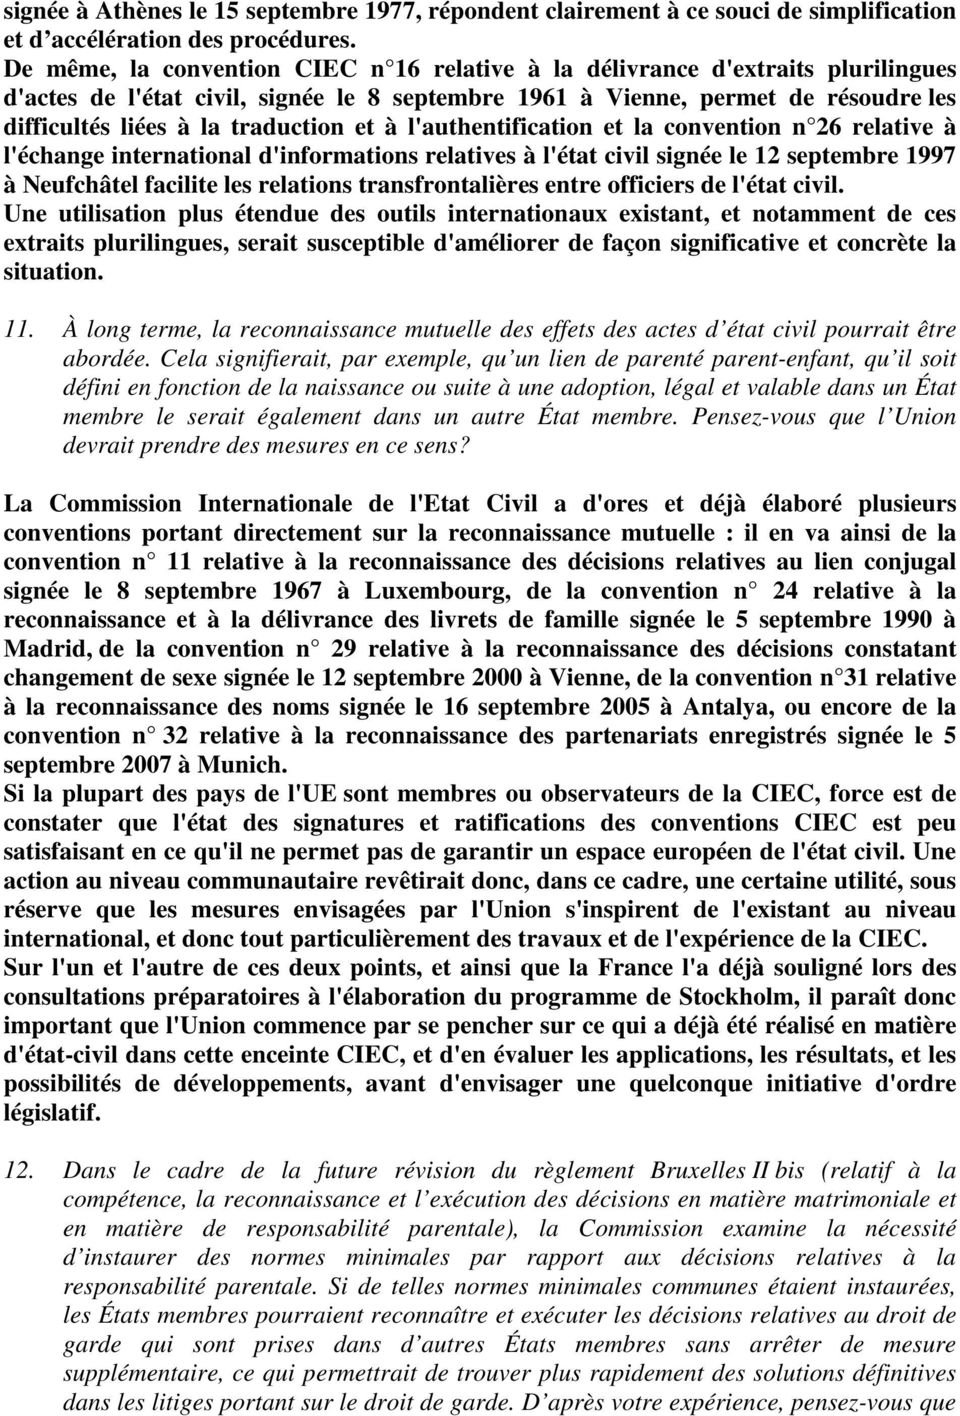 traduction et à l'authentification et la convention n 26 relative à l'échange international d'informations relatives à l'état civil signée le 12 septembre 1997 à Neufchâtel facilite les relations